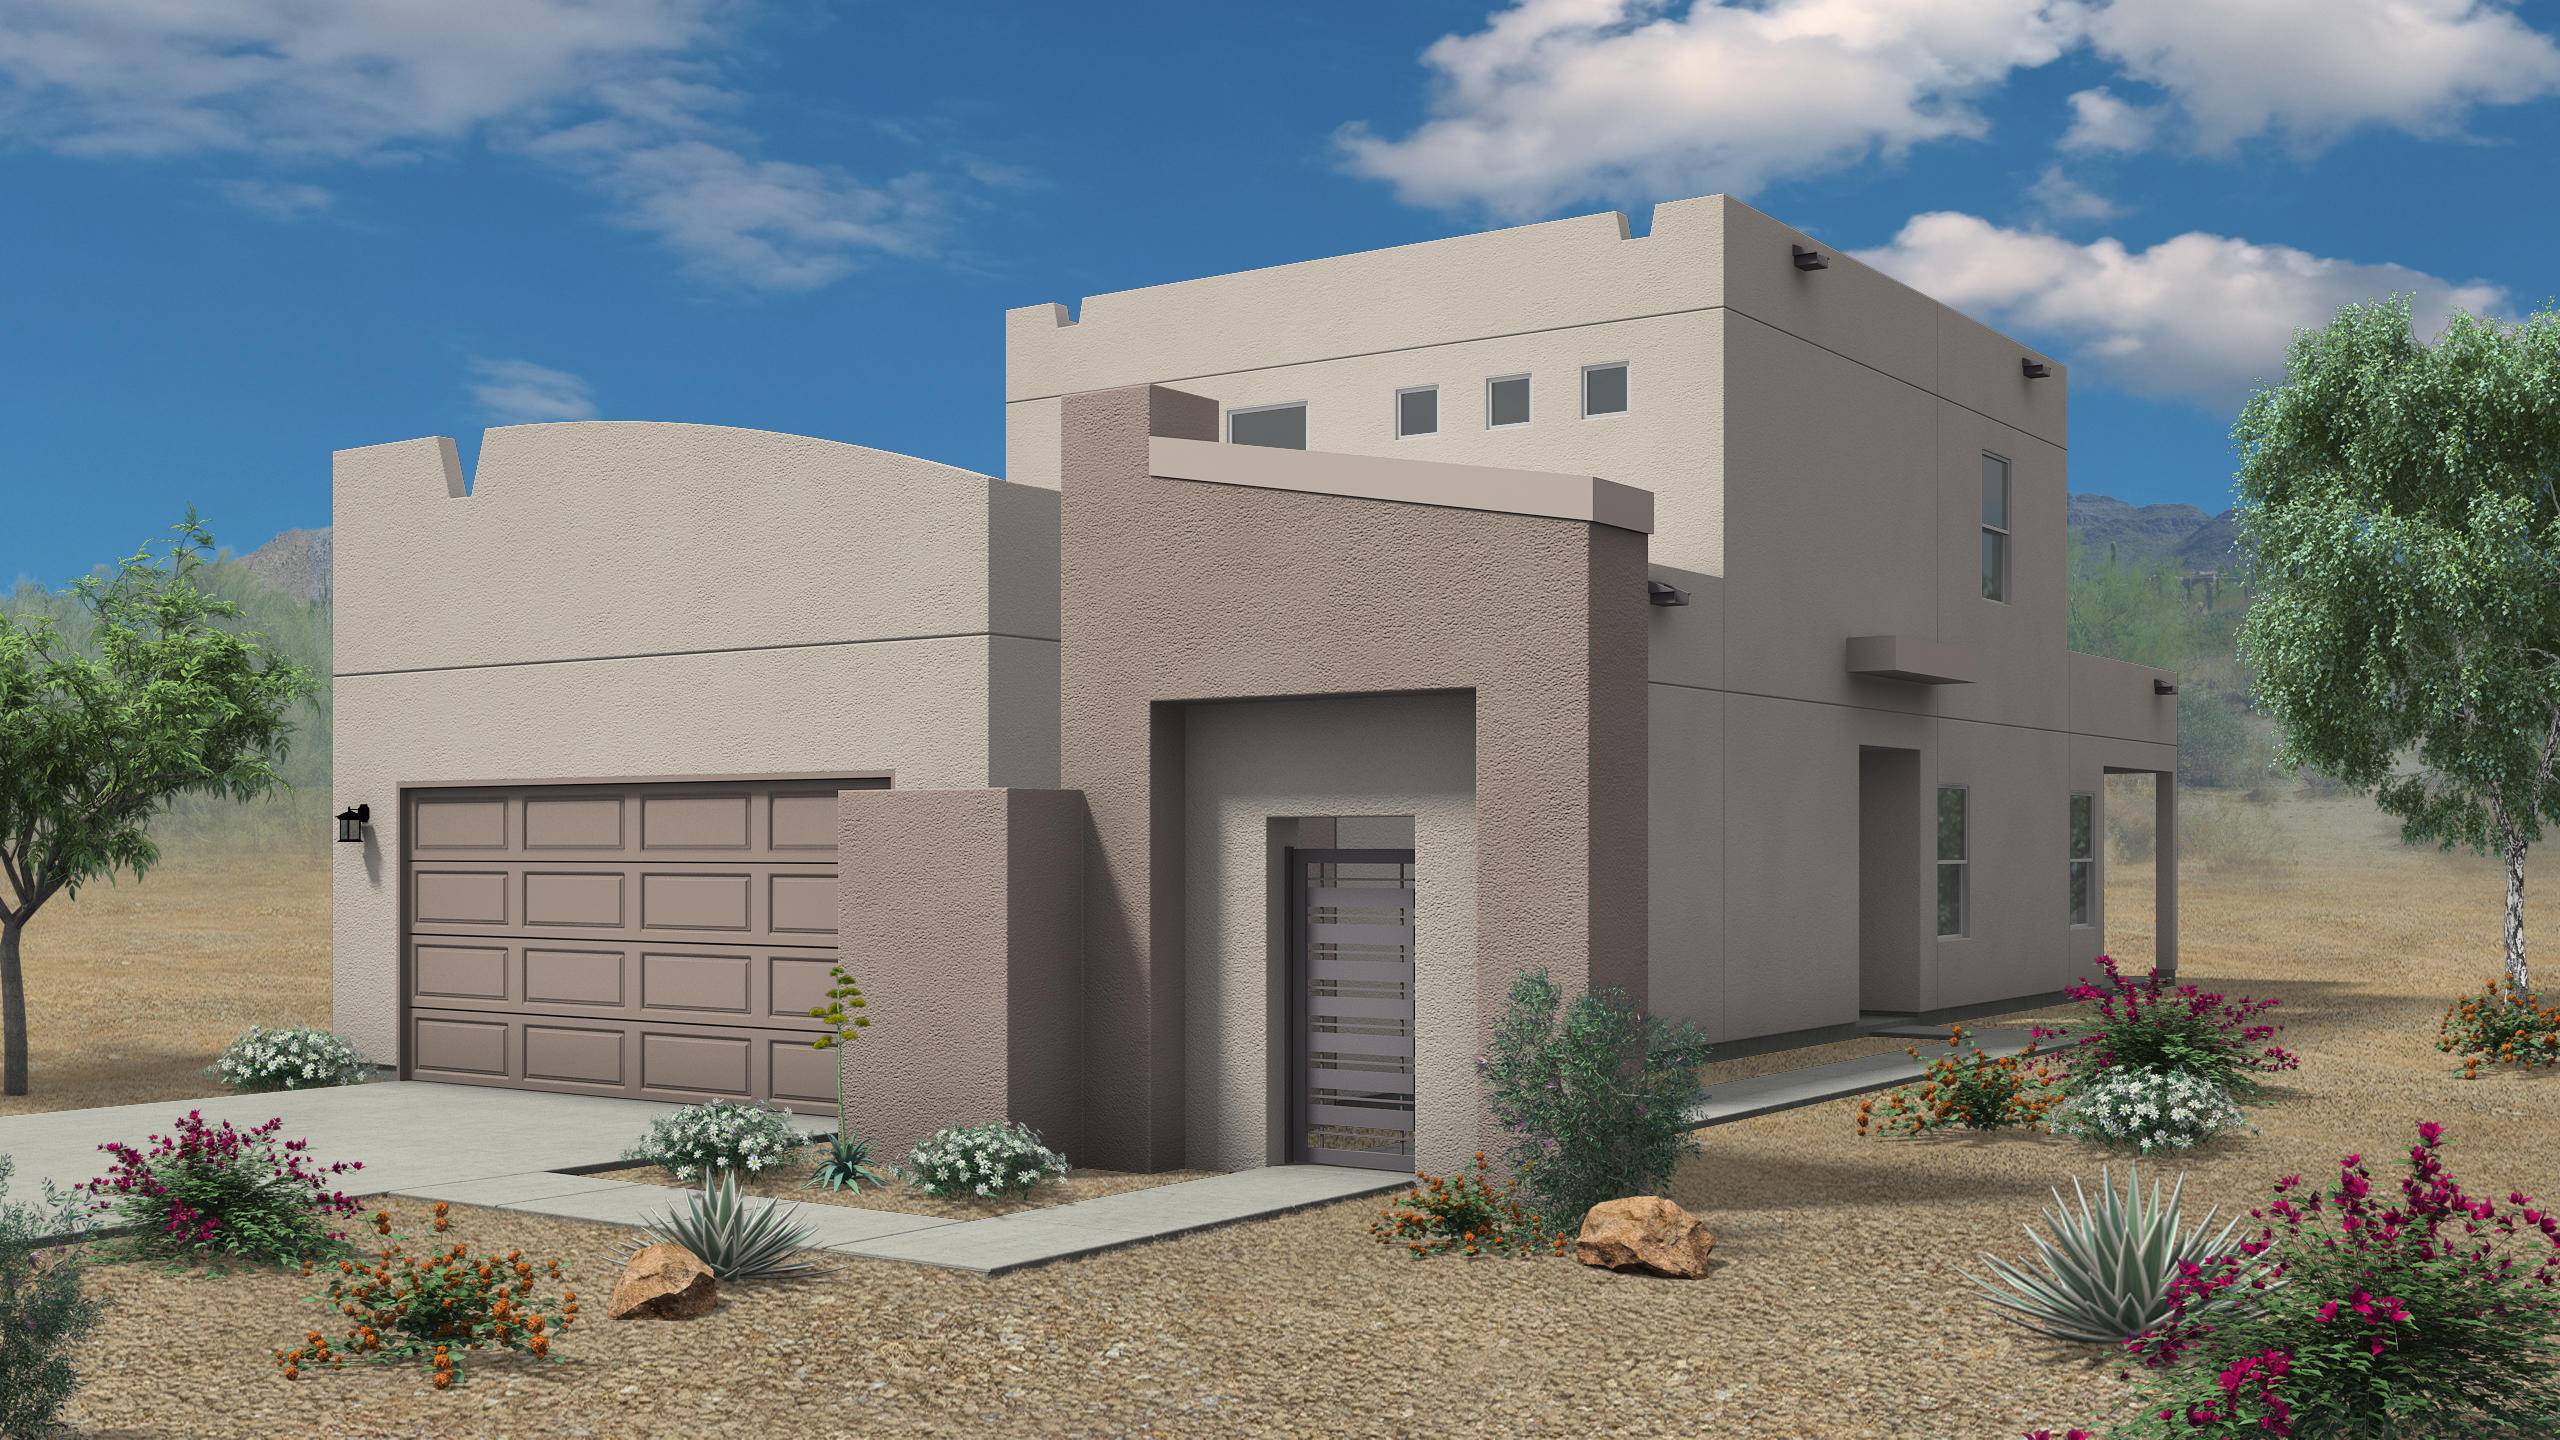 Brand new Sivage Home. New floorplan designs that are right sized. Secure Gatehouse Entry to Private Courtyard Living Space taking advantage of 10' side yard and 15' backyard to give a lot of usable  outdoor space. This lot is even bigger on the cul-de-sac and pie shaped.  Bright and airy contemporary floor plan includes Fireplace, Quartz countertops in kitchen and utility, Blanco crushed granite sink, custom cabinet options, stainless steel appliances and designer Luxury Vinyl Tile (LVT) Come see the next phase of FIesta a master plan community by Sivage Community Development, LLC. Enjoy parks, playgrounds, walking trails and close proximity to restaurants, shopping and easy freeway access. Home is under construction and scheduled to complete by mid-June.